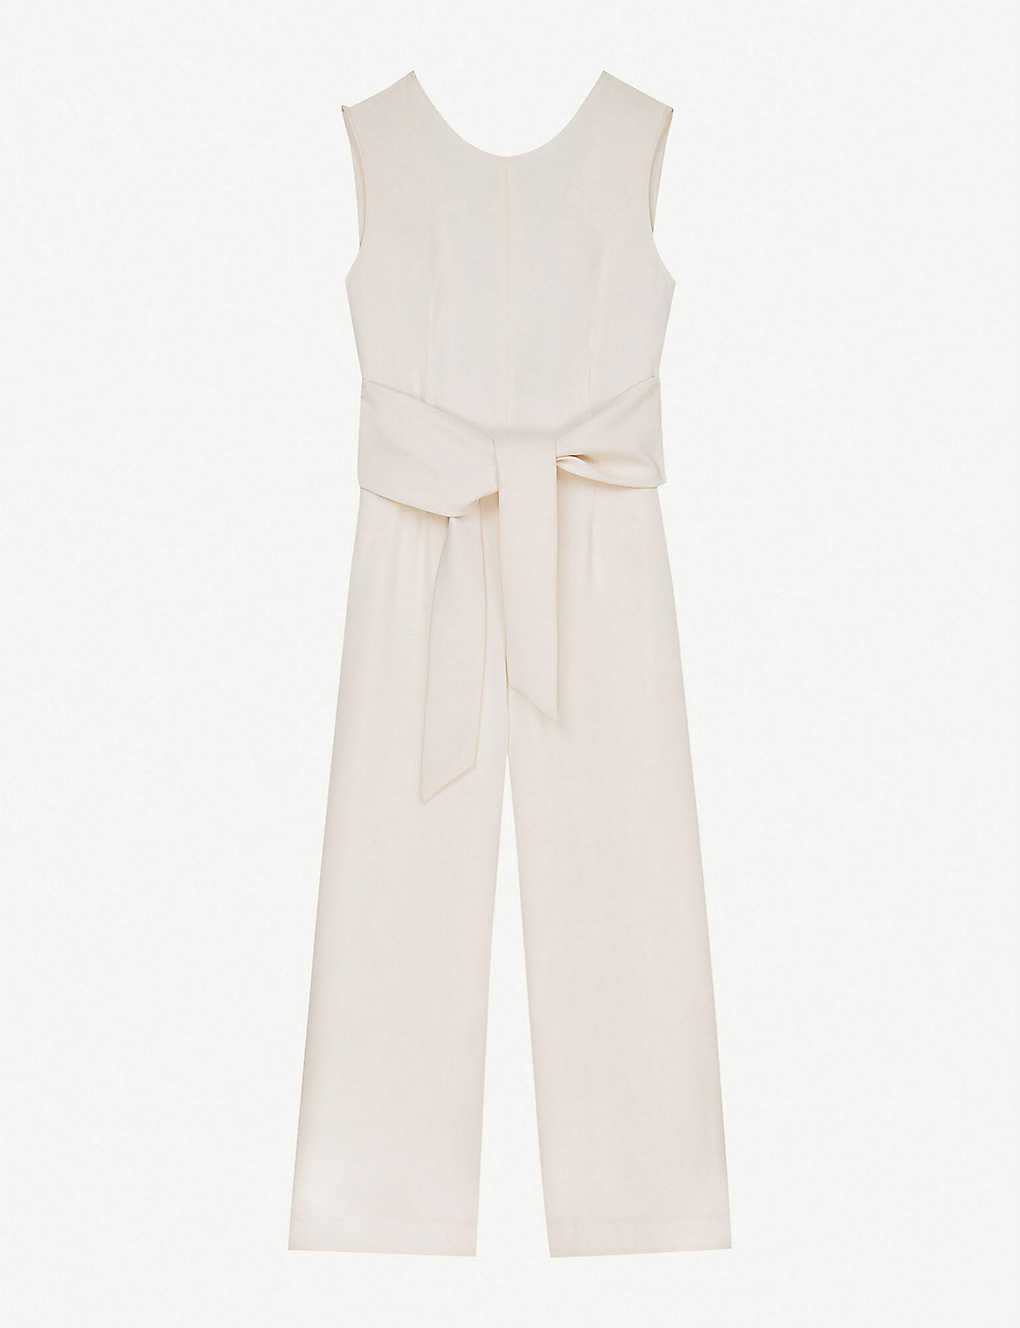 French Fashion Clothing Brand Claudie Pierlot French Jumpsuit Parisian Style Paris Chic Style